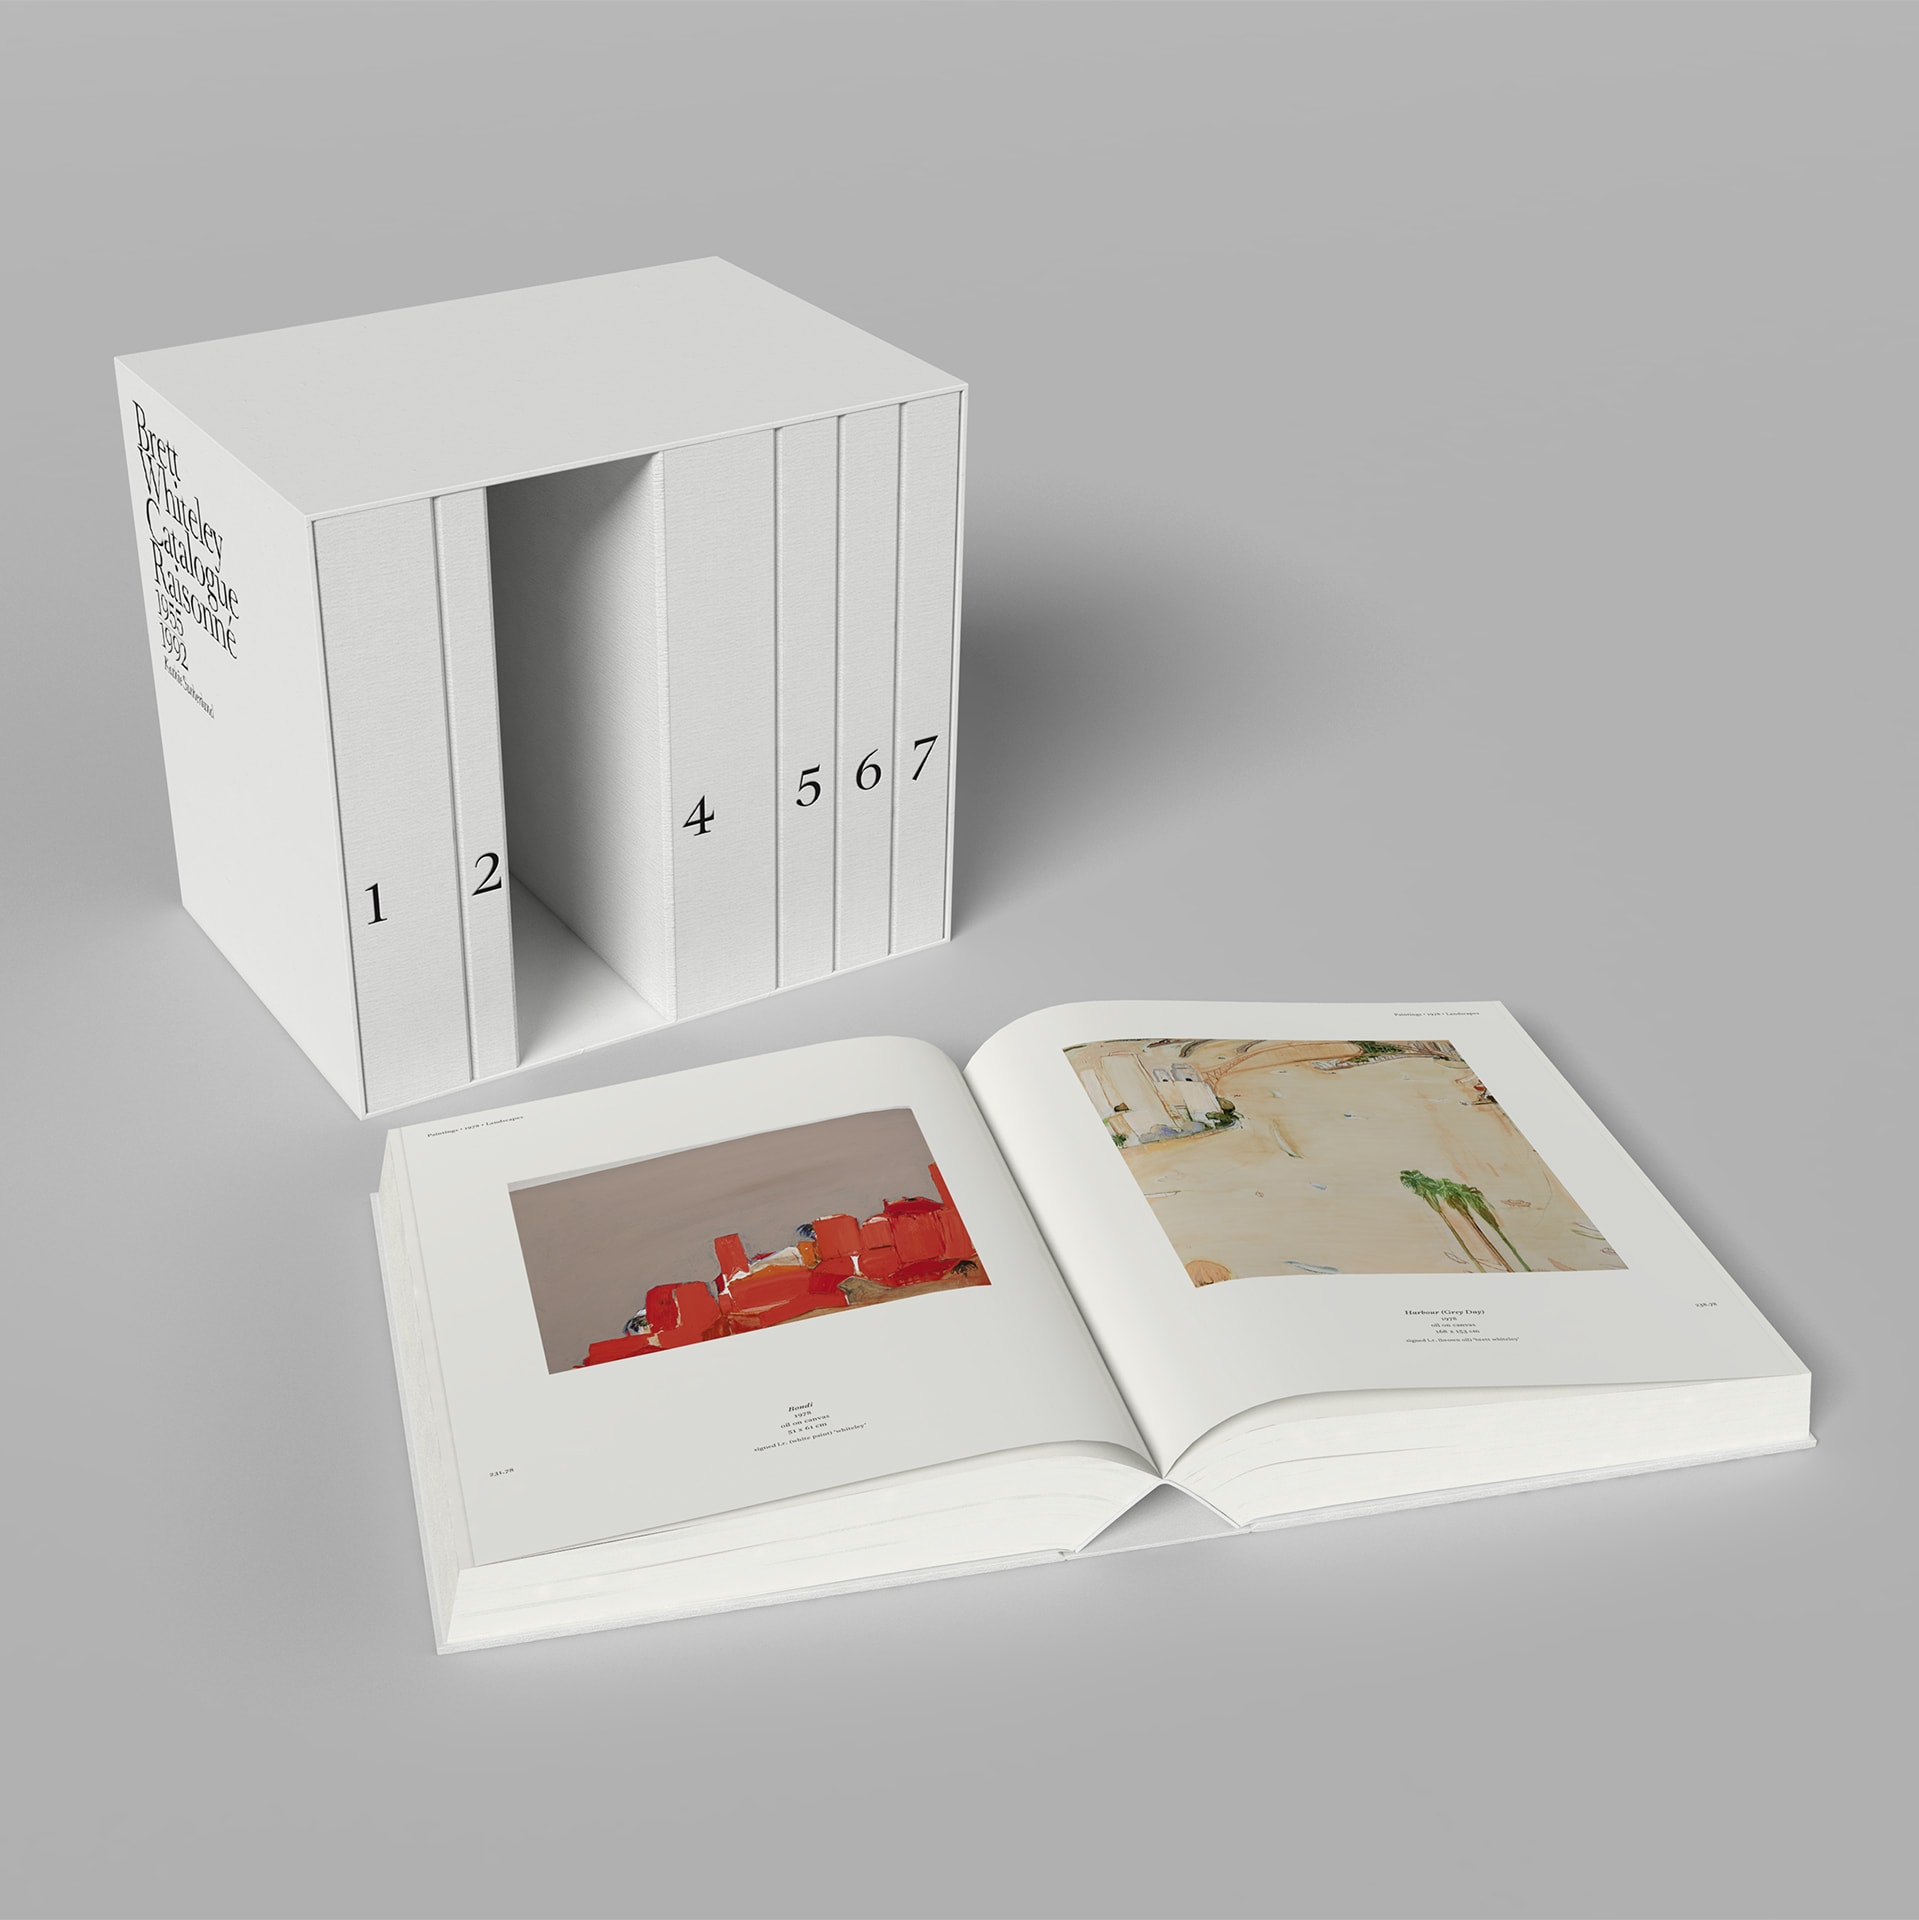 Photo: Brett Whiteley: Catalogue Raisonné: 1955–1992, edited by Kathie Sutherland, individually numbered box set of 7 books, 25 kgs, 3000 pp, limited release of 1000 copies. Courtesy of Schwartz City